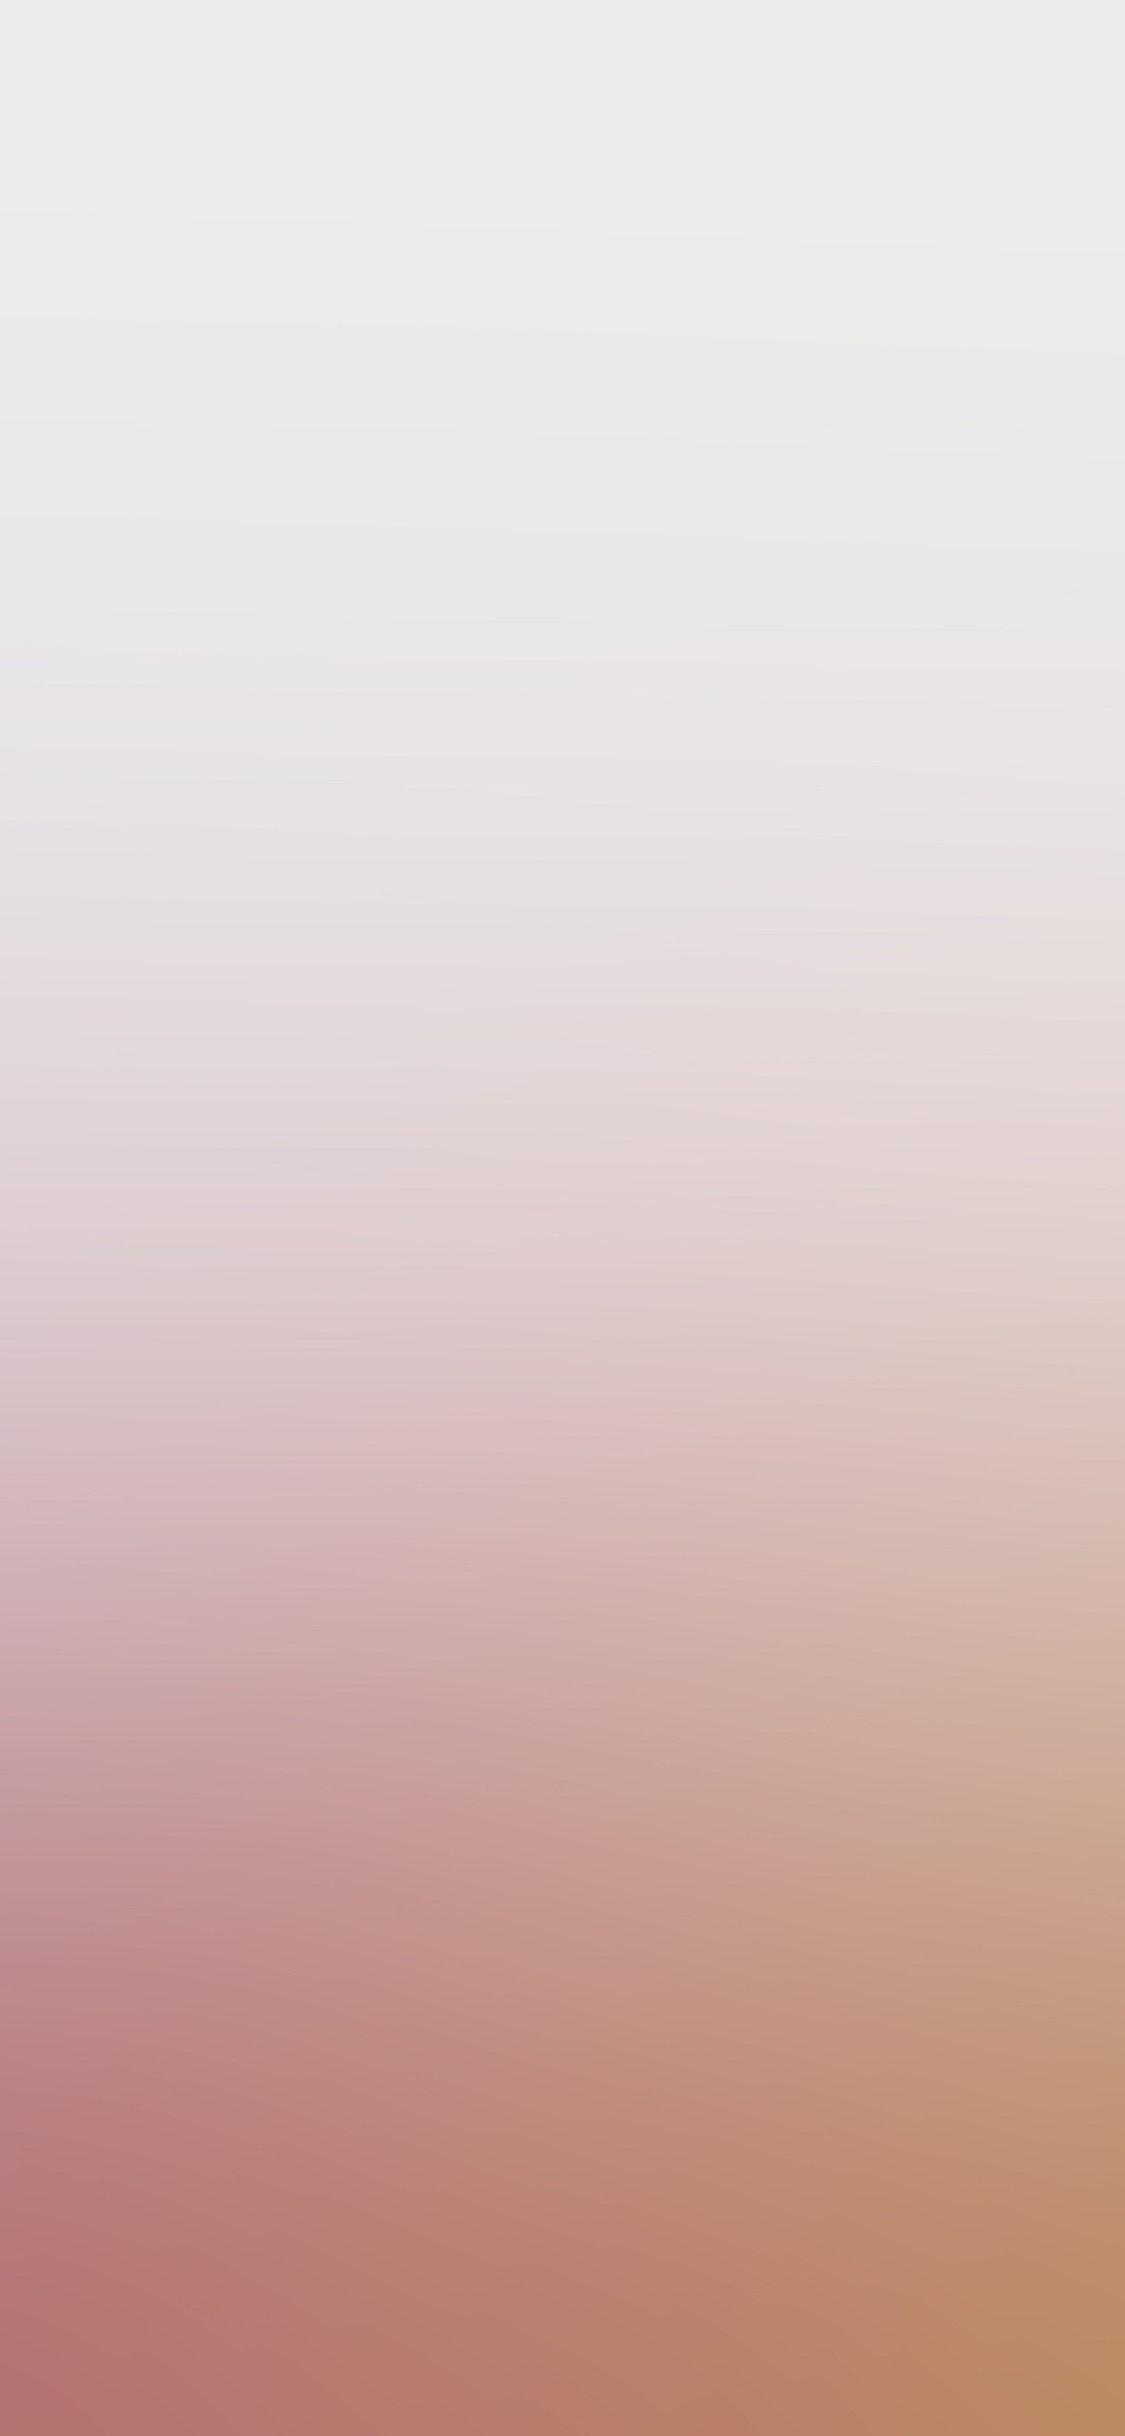 iPhoneXpapers.com-Apple-iPhone-wallpaper-sf61-white-filre-red-gradation-blur